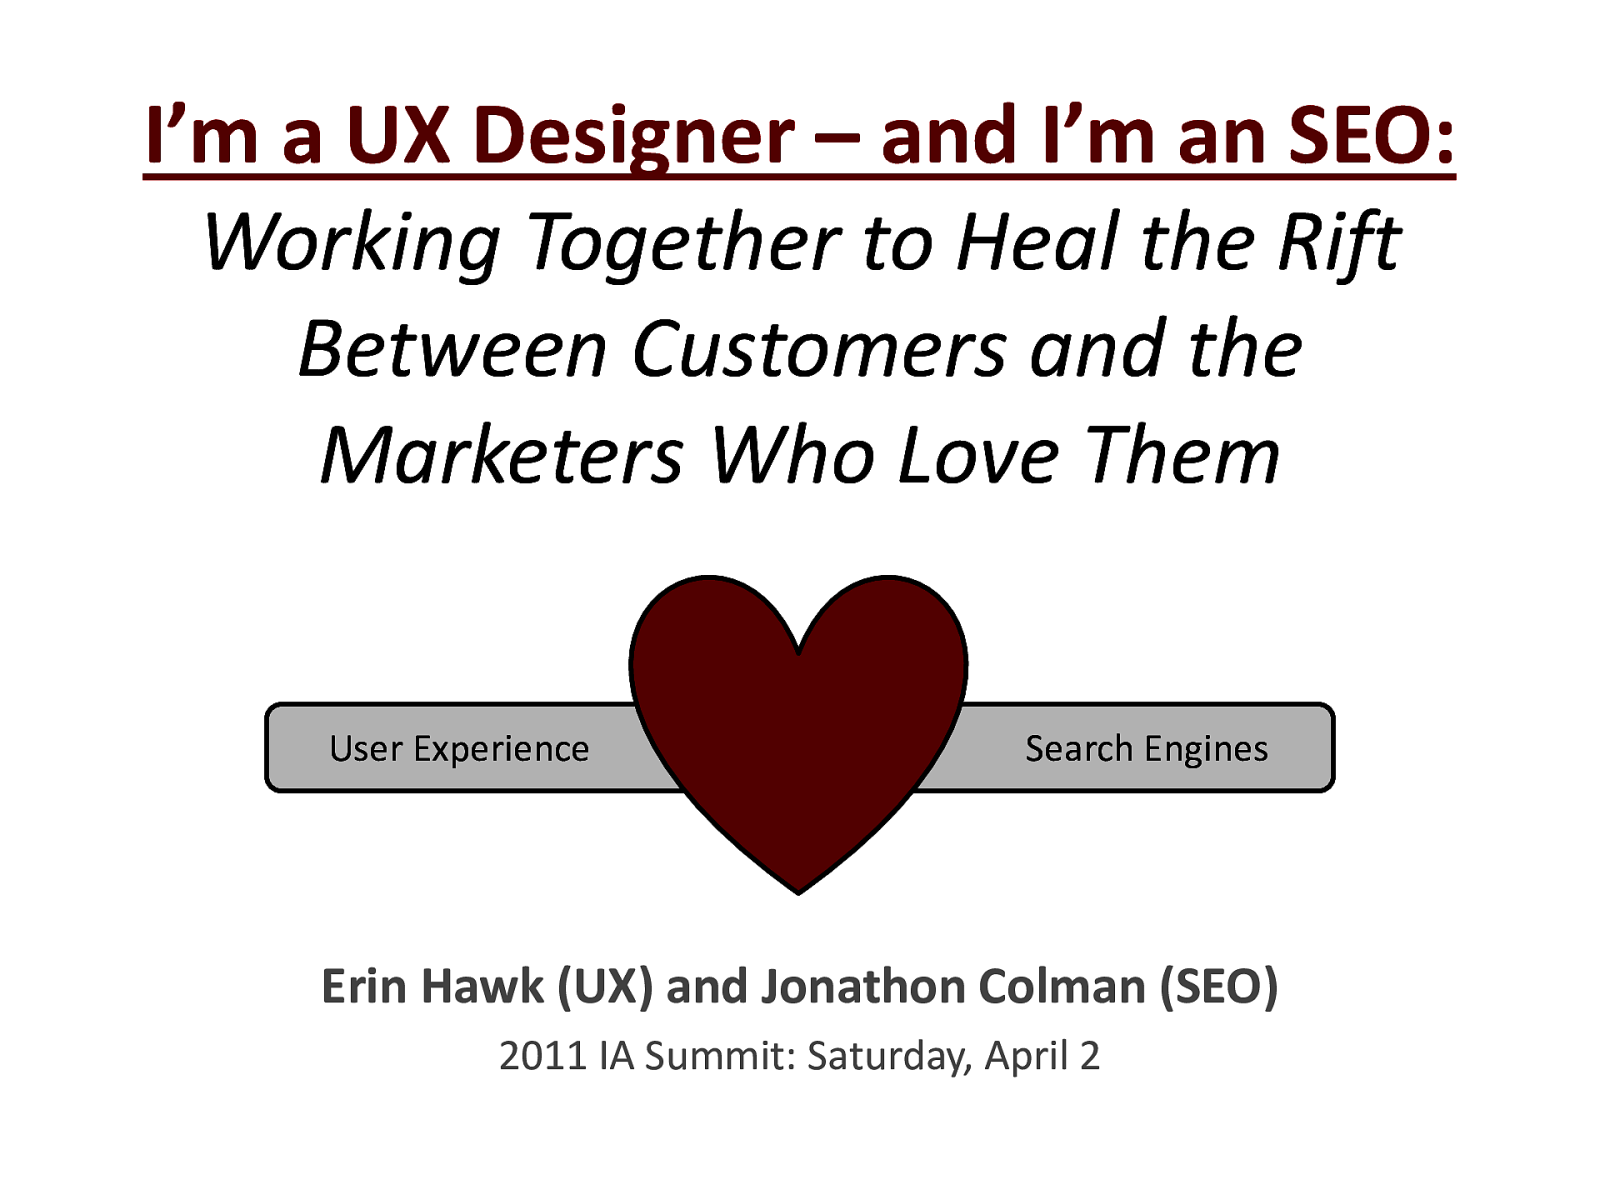 UX & SEO: Working Together to Heal the Rift Between Customers and the Marketers Who Love Them